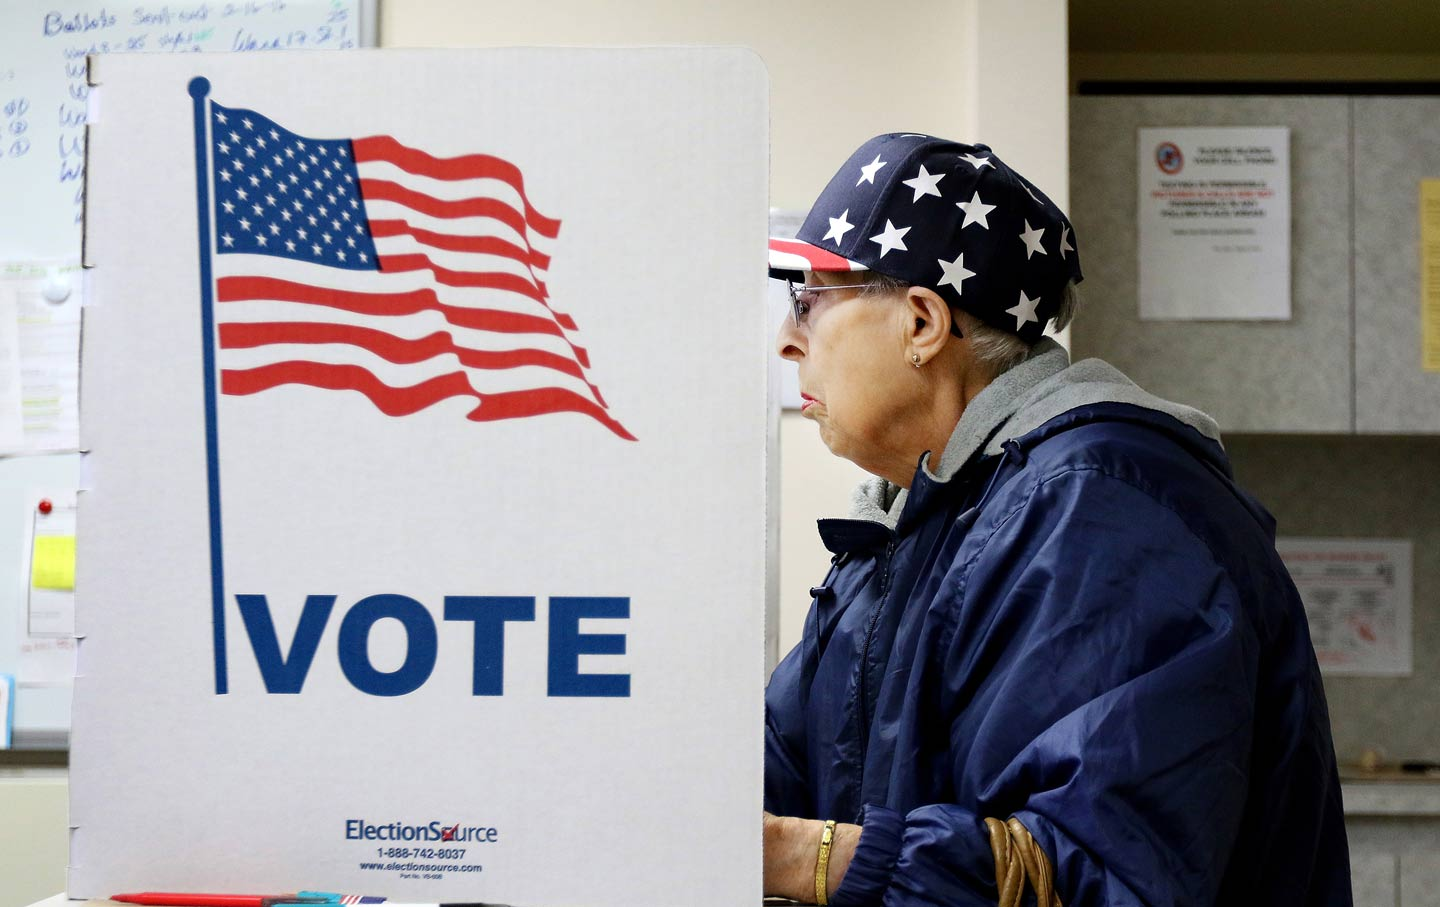 elections and voter identification issues a comparison of two articles Are voter id laws as big of an issue in canada as they are in america  how do  voter id laws and election fraud debates compare in.